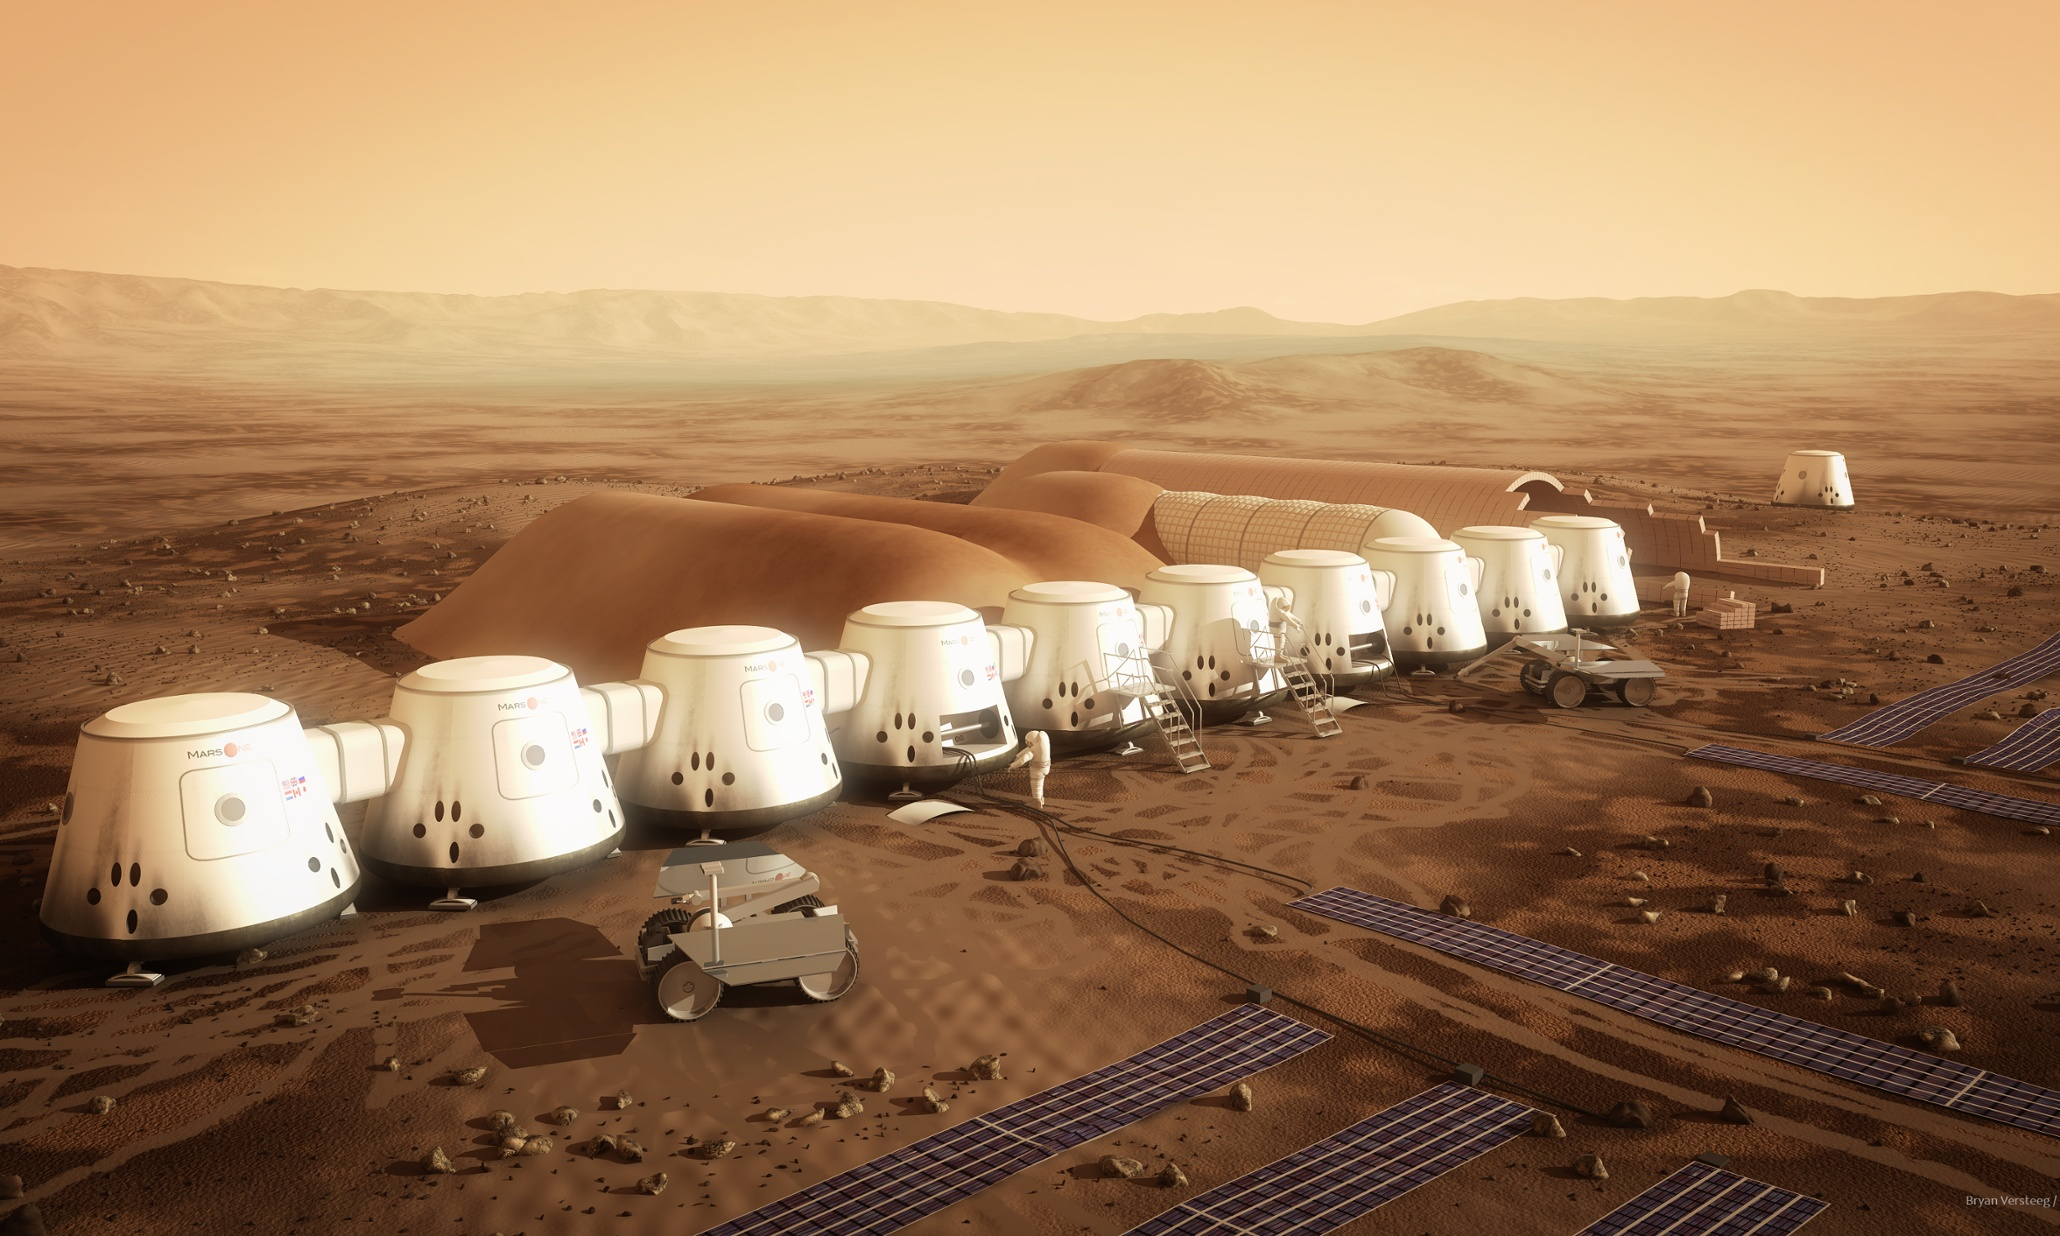 Let's all move to Mars! The space architects shaping our future